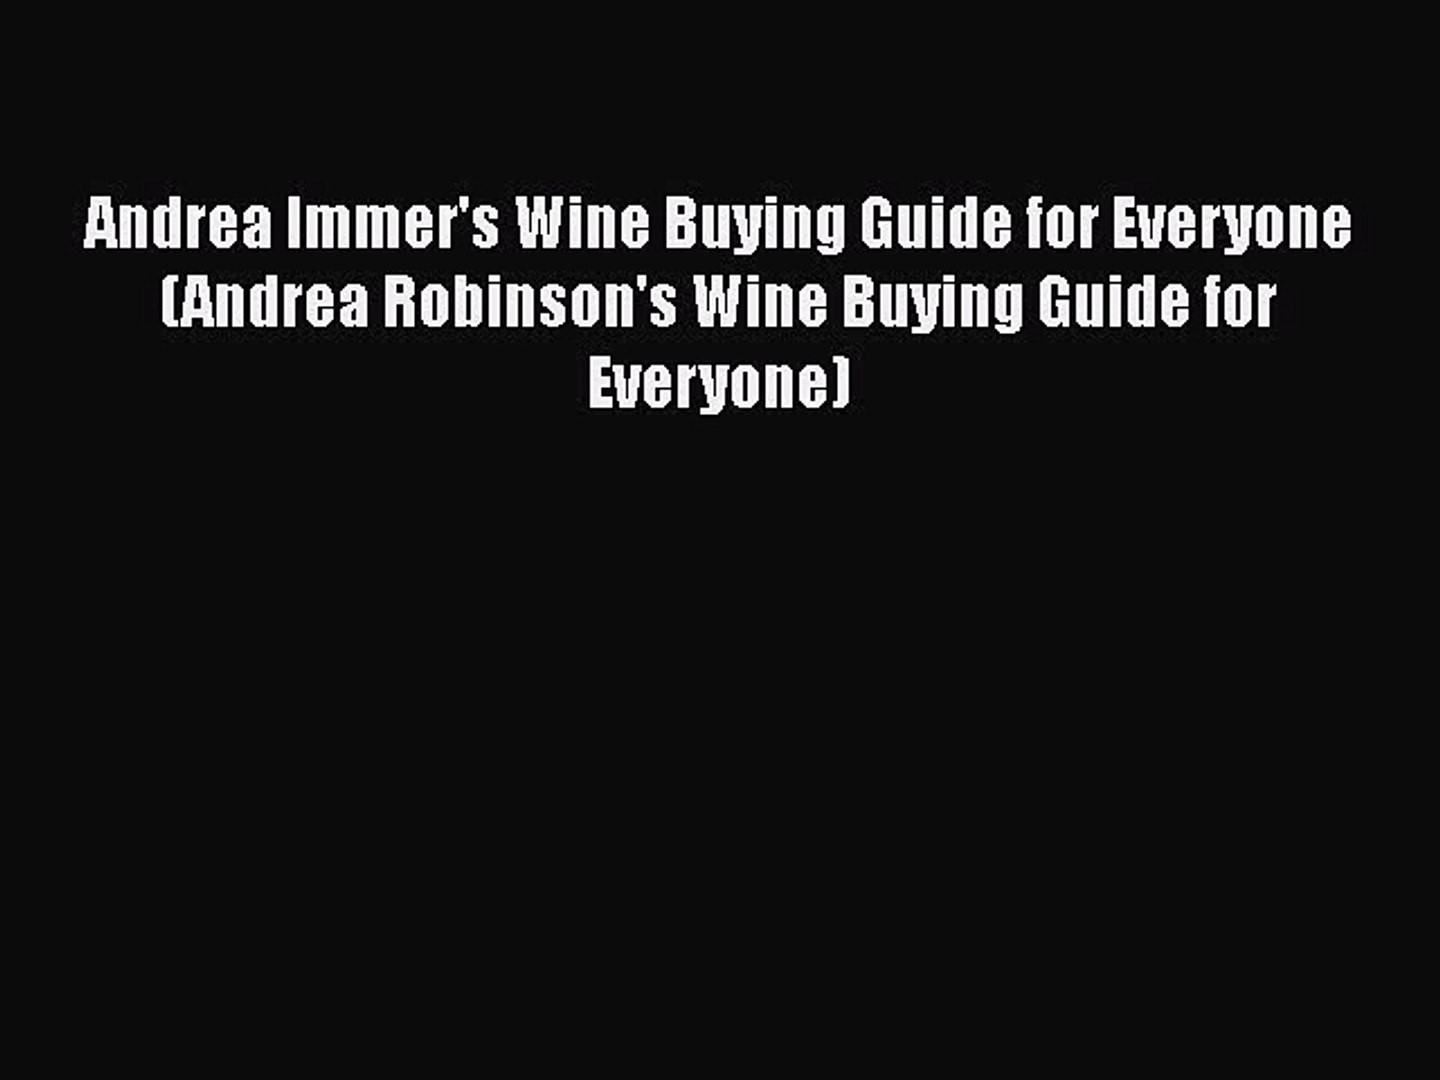 Read Andrea Immer's Wine Buying Guide for Everyone (Andrea Robinson's Wine Buying Guide fo